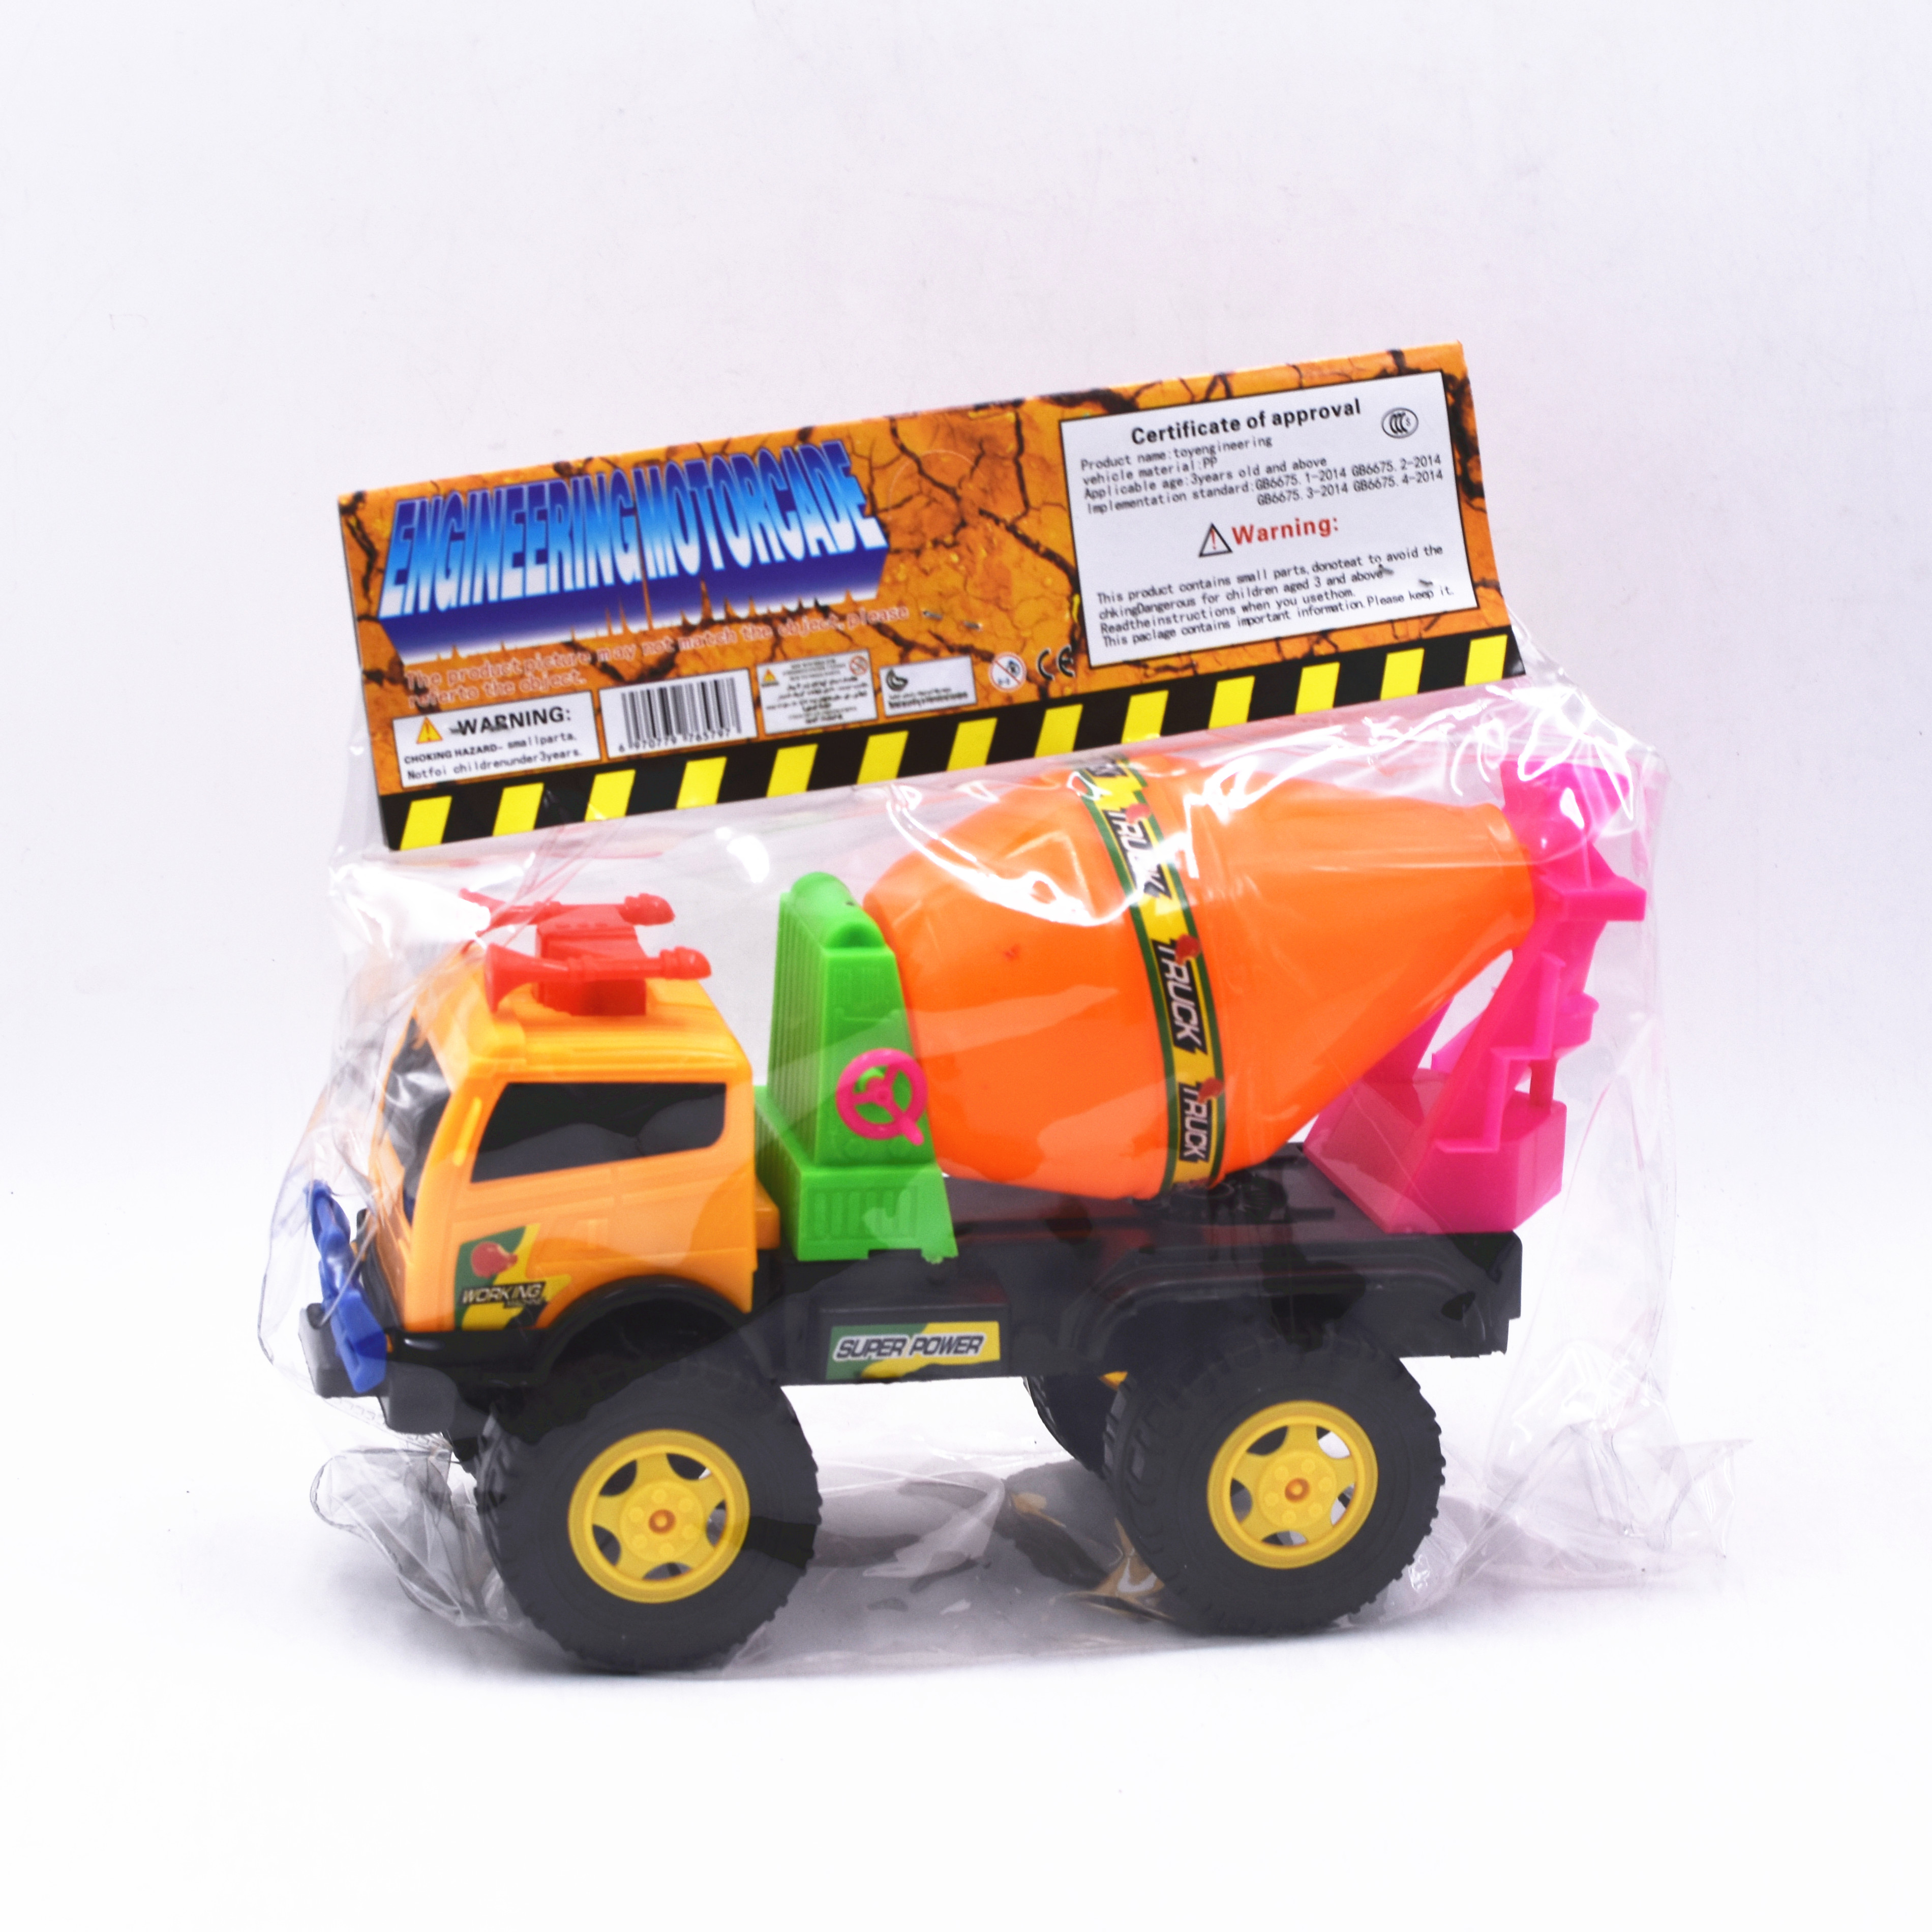 FREE WHEEL TRUCK TOY LY1771